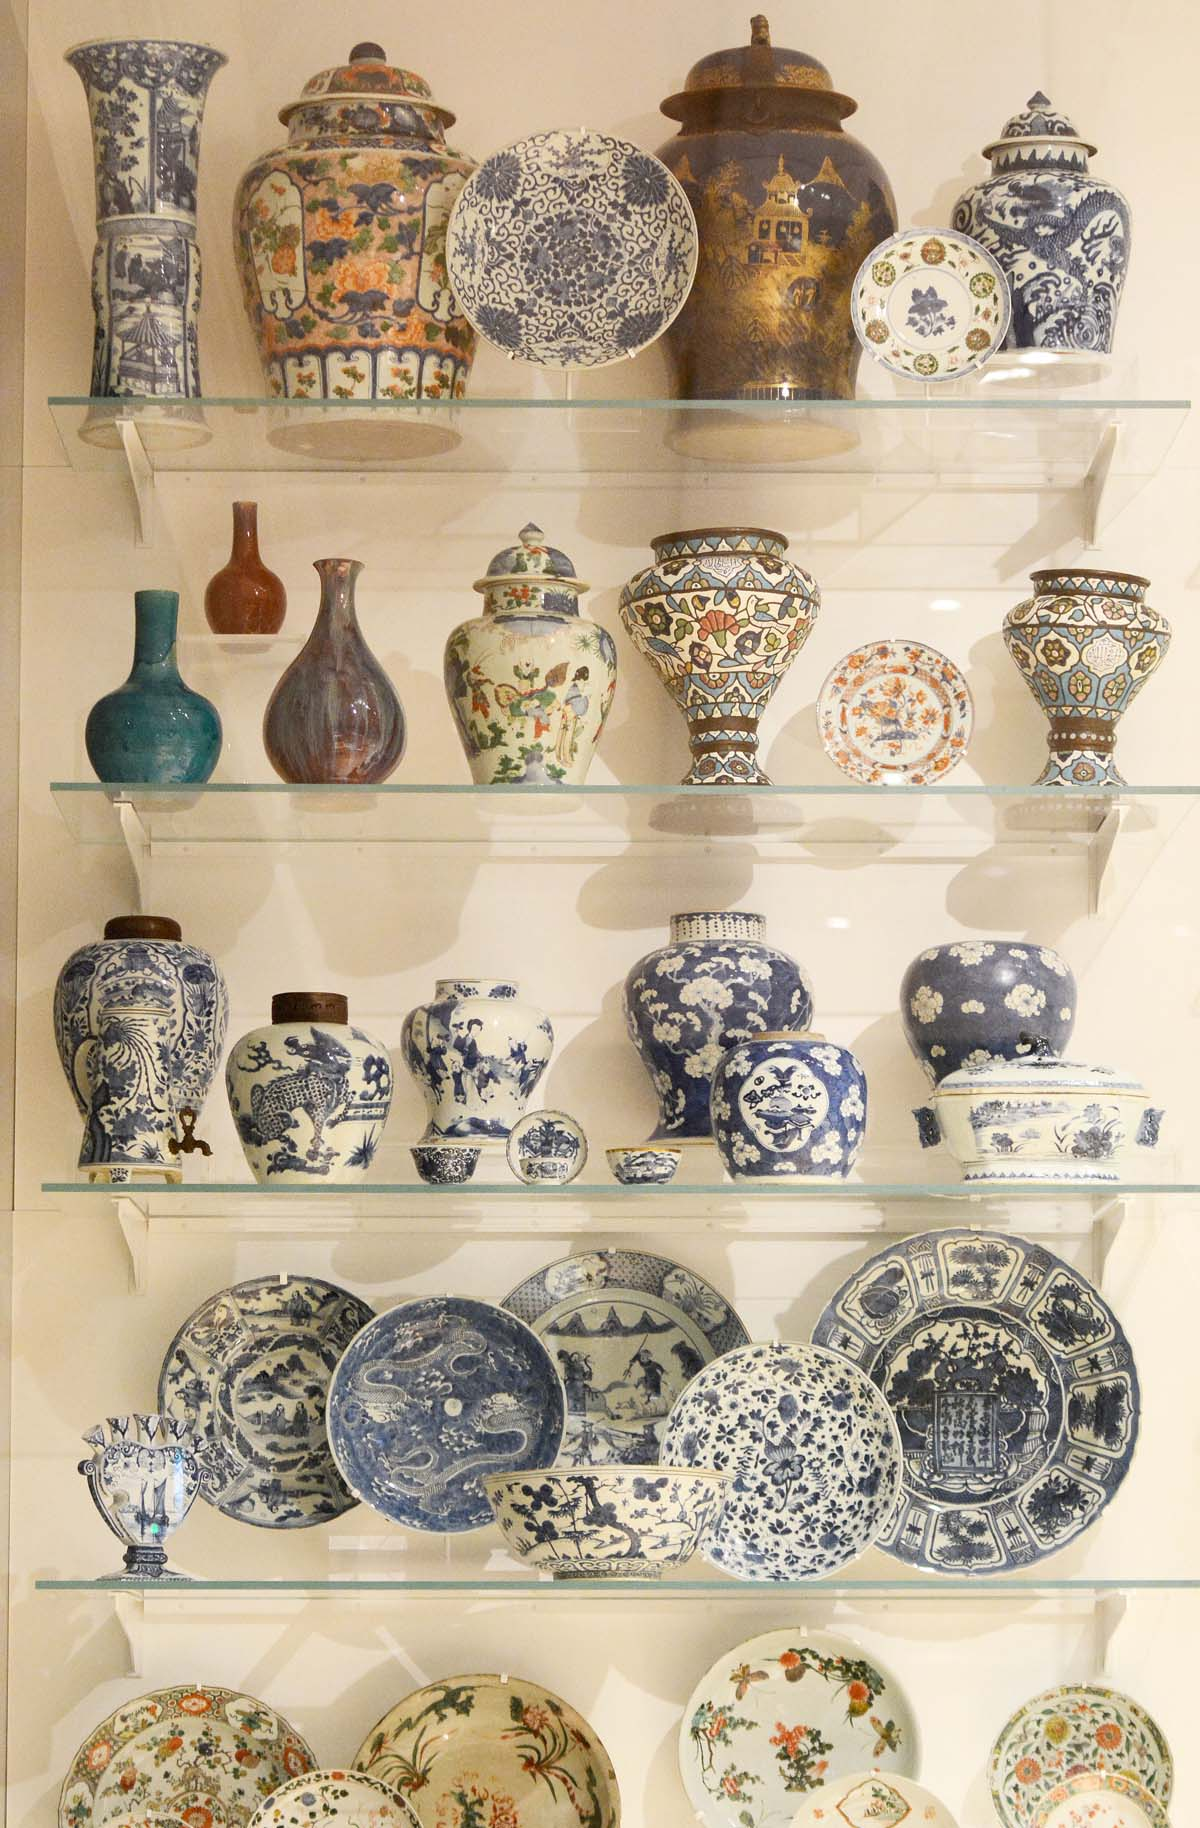 a display case with pots in it